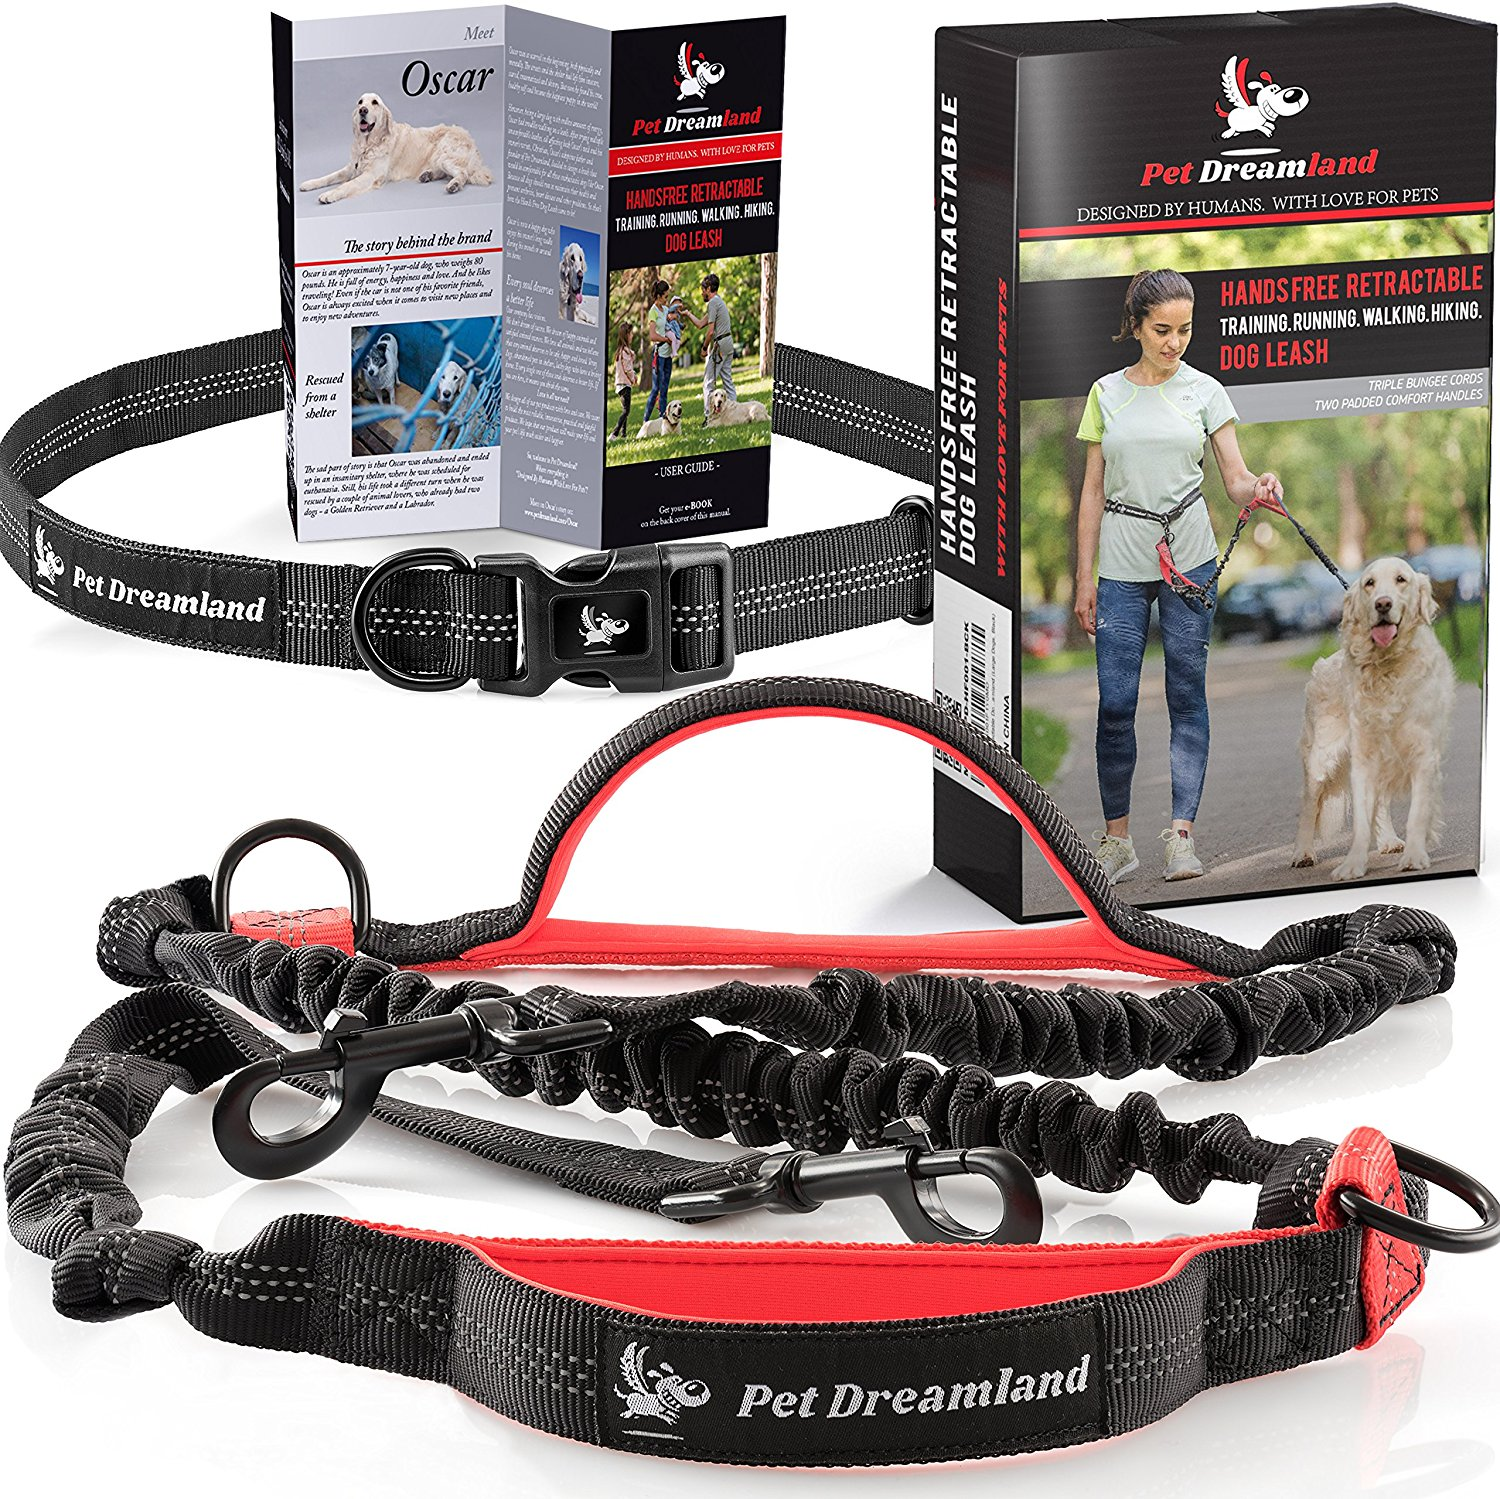 PetDreamland Hands Free Dog Leash